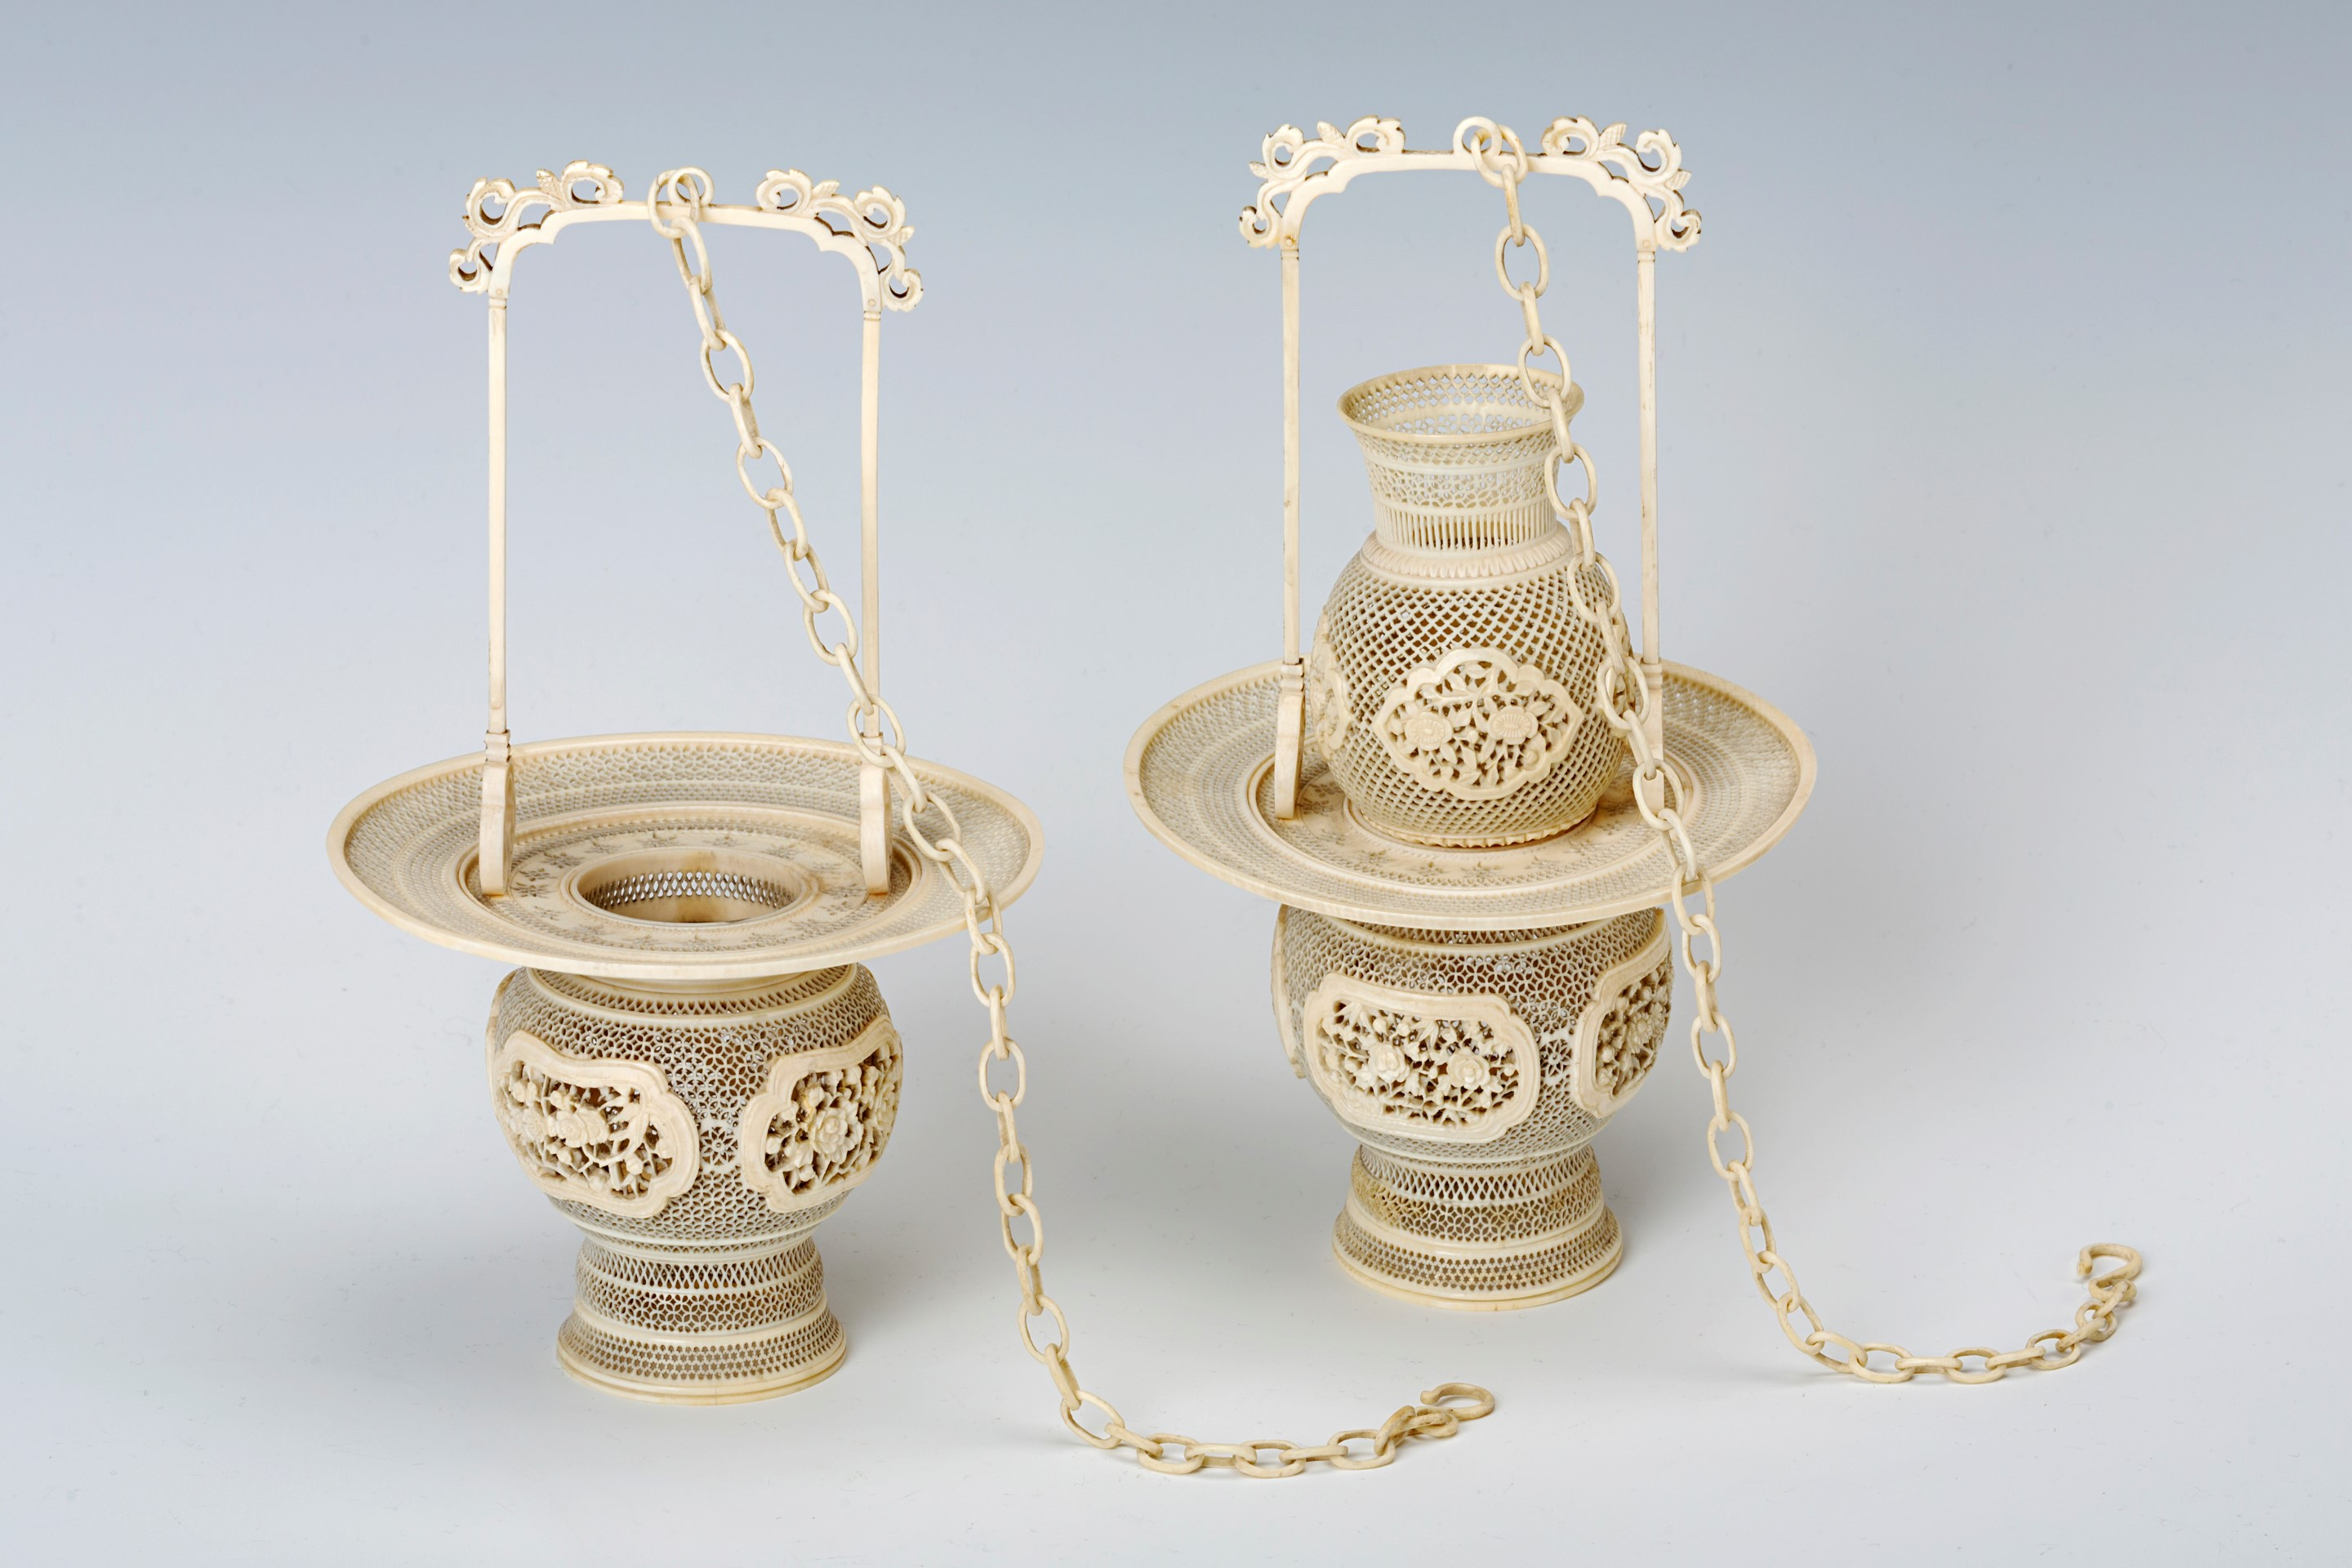 A pair of Chinese reticulated ivory hanging baskets and a pair of associated intricately carved ivory puzzle balls.